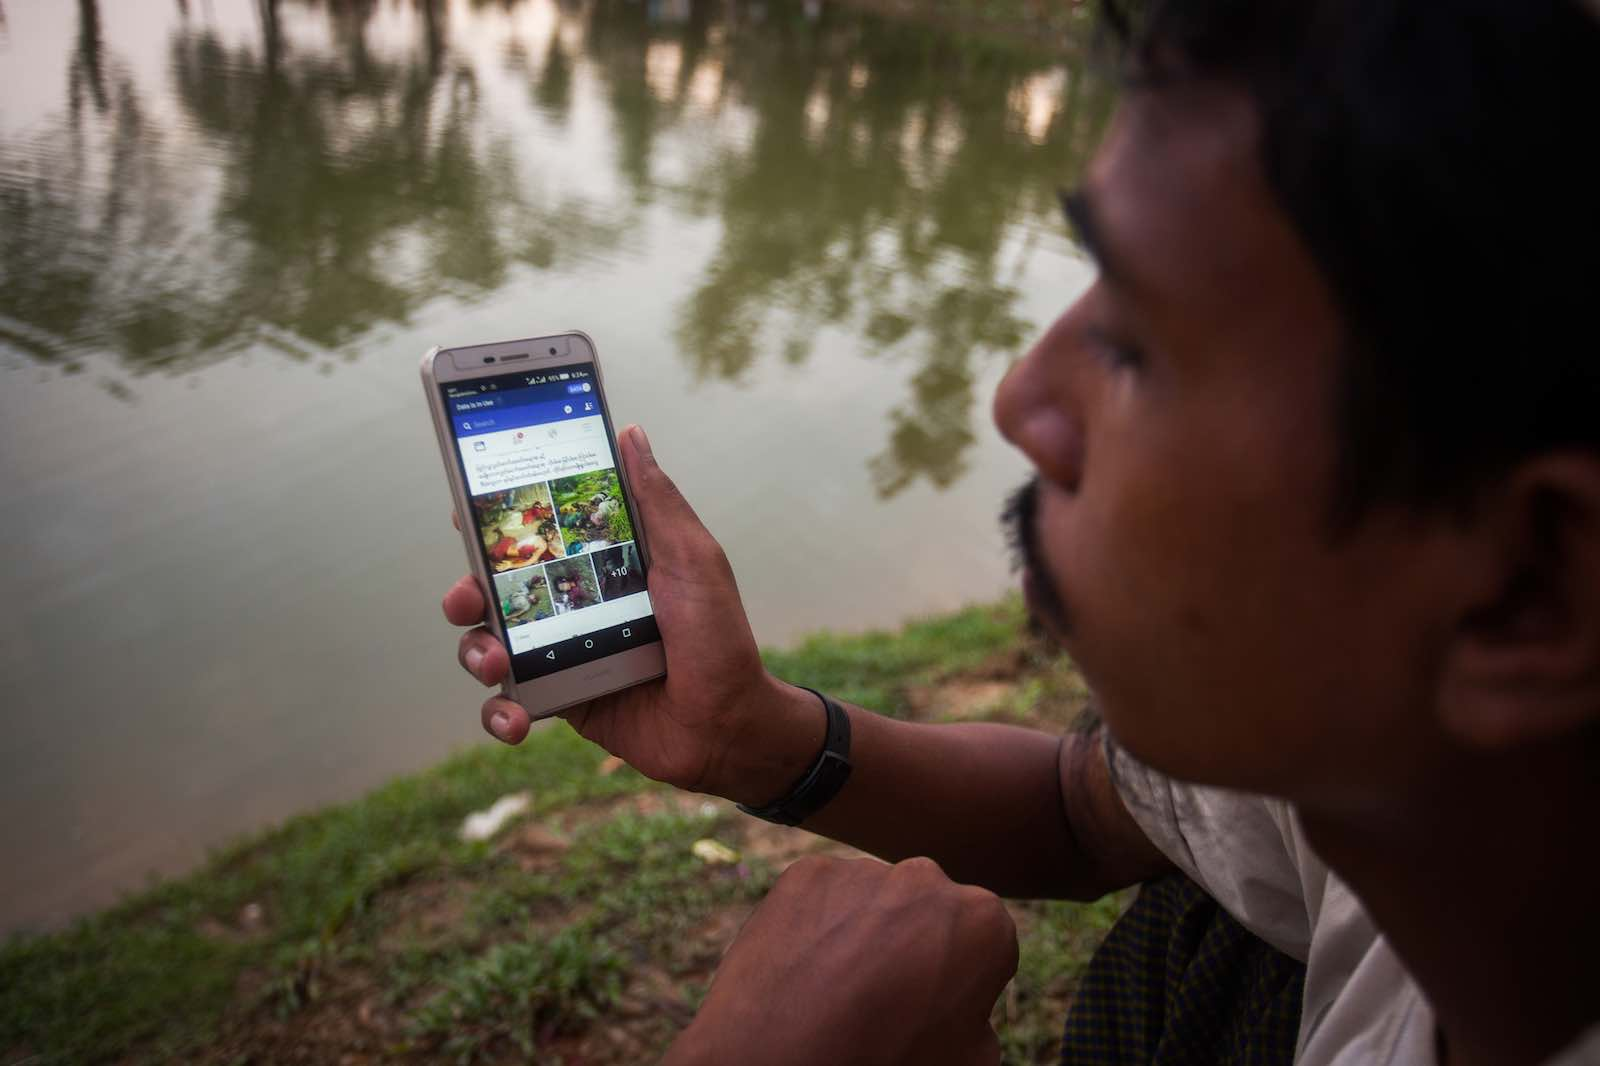 """Restrictions were put in place to undermine purported Rohingya """"criminal activities"""" but mobile technologies are a key tool for camp residents to protect themselves, too (Photo: Ahmed Salahuddin via Getty Images)"""